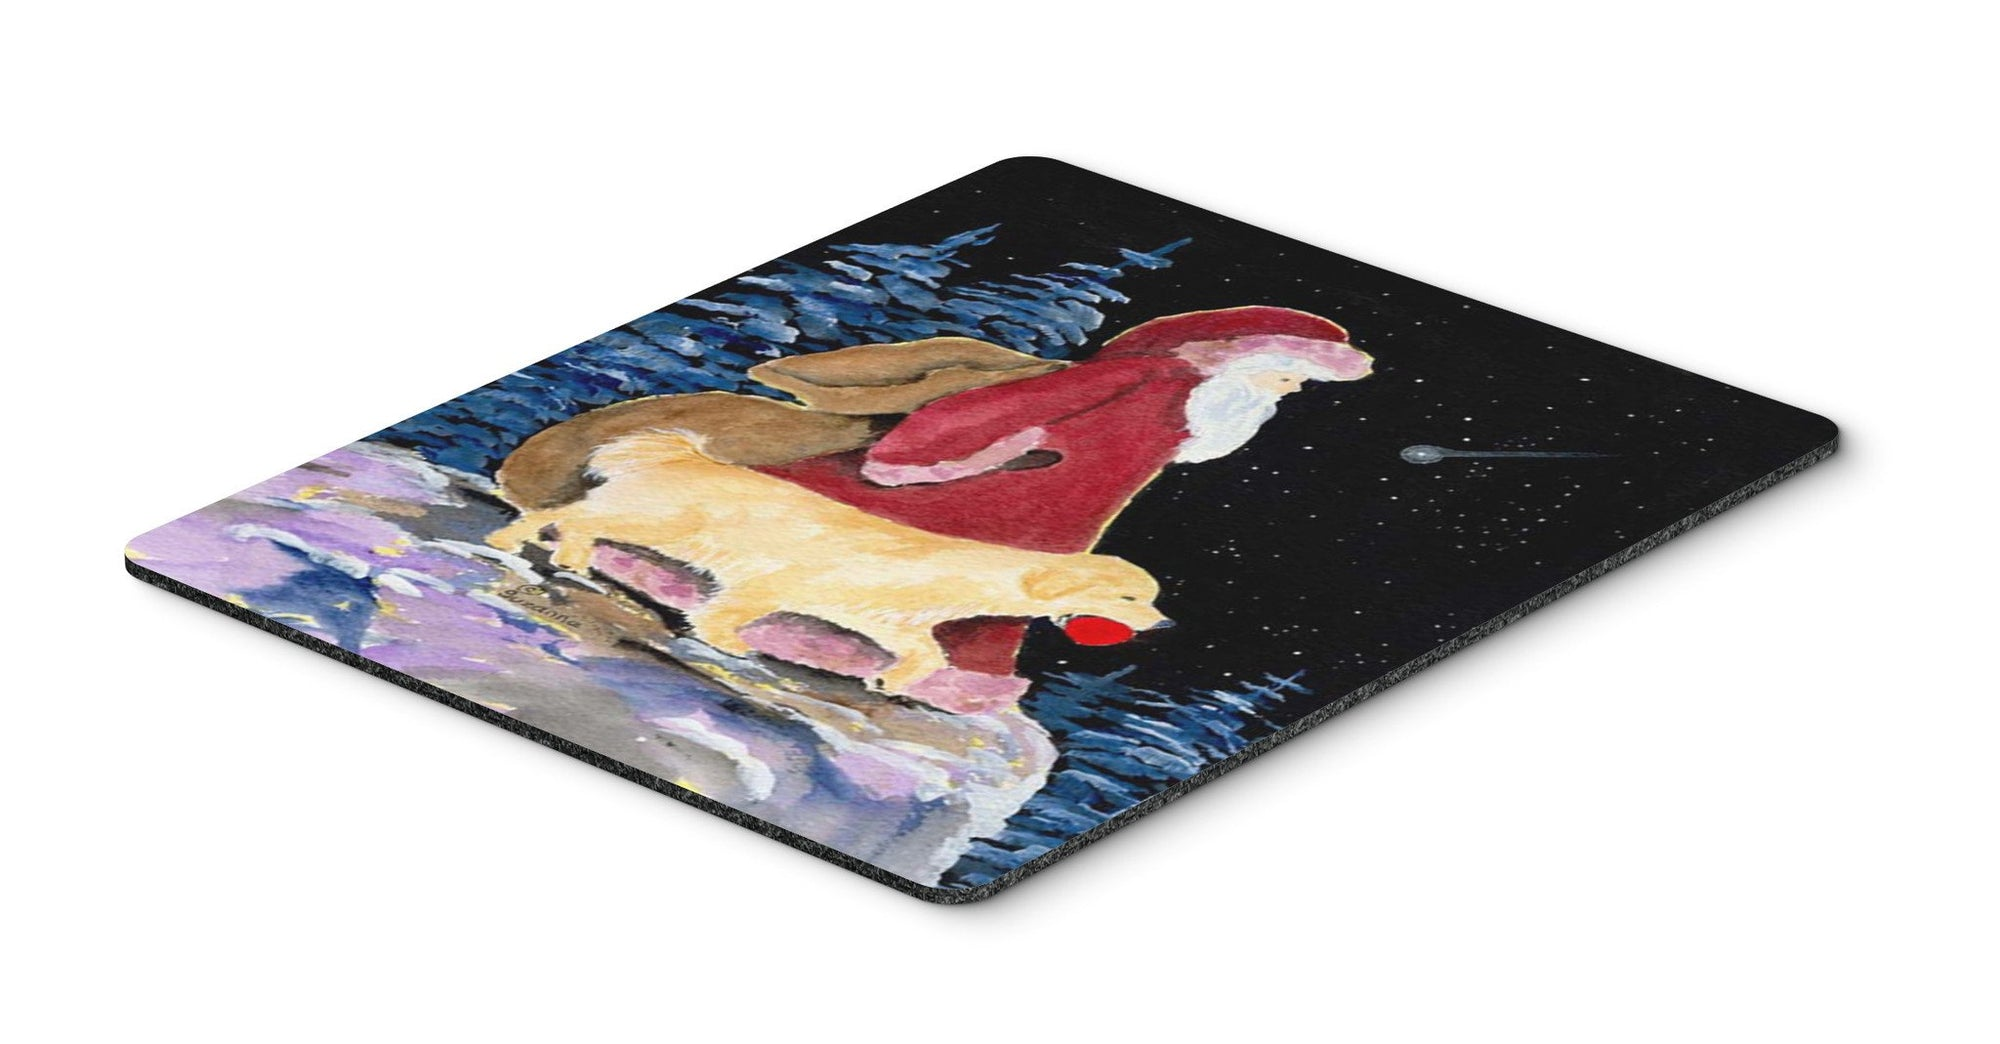 Santa Claus with  Golden Retriever Mouse Pad / Hot Pad / Trivet by Caroline's Treasures